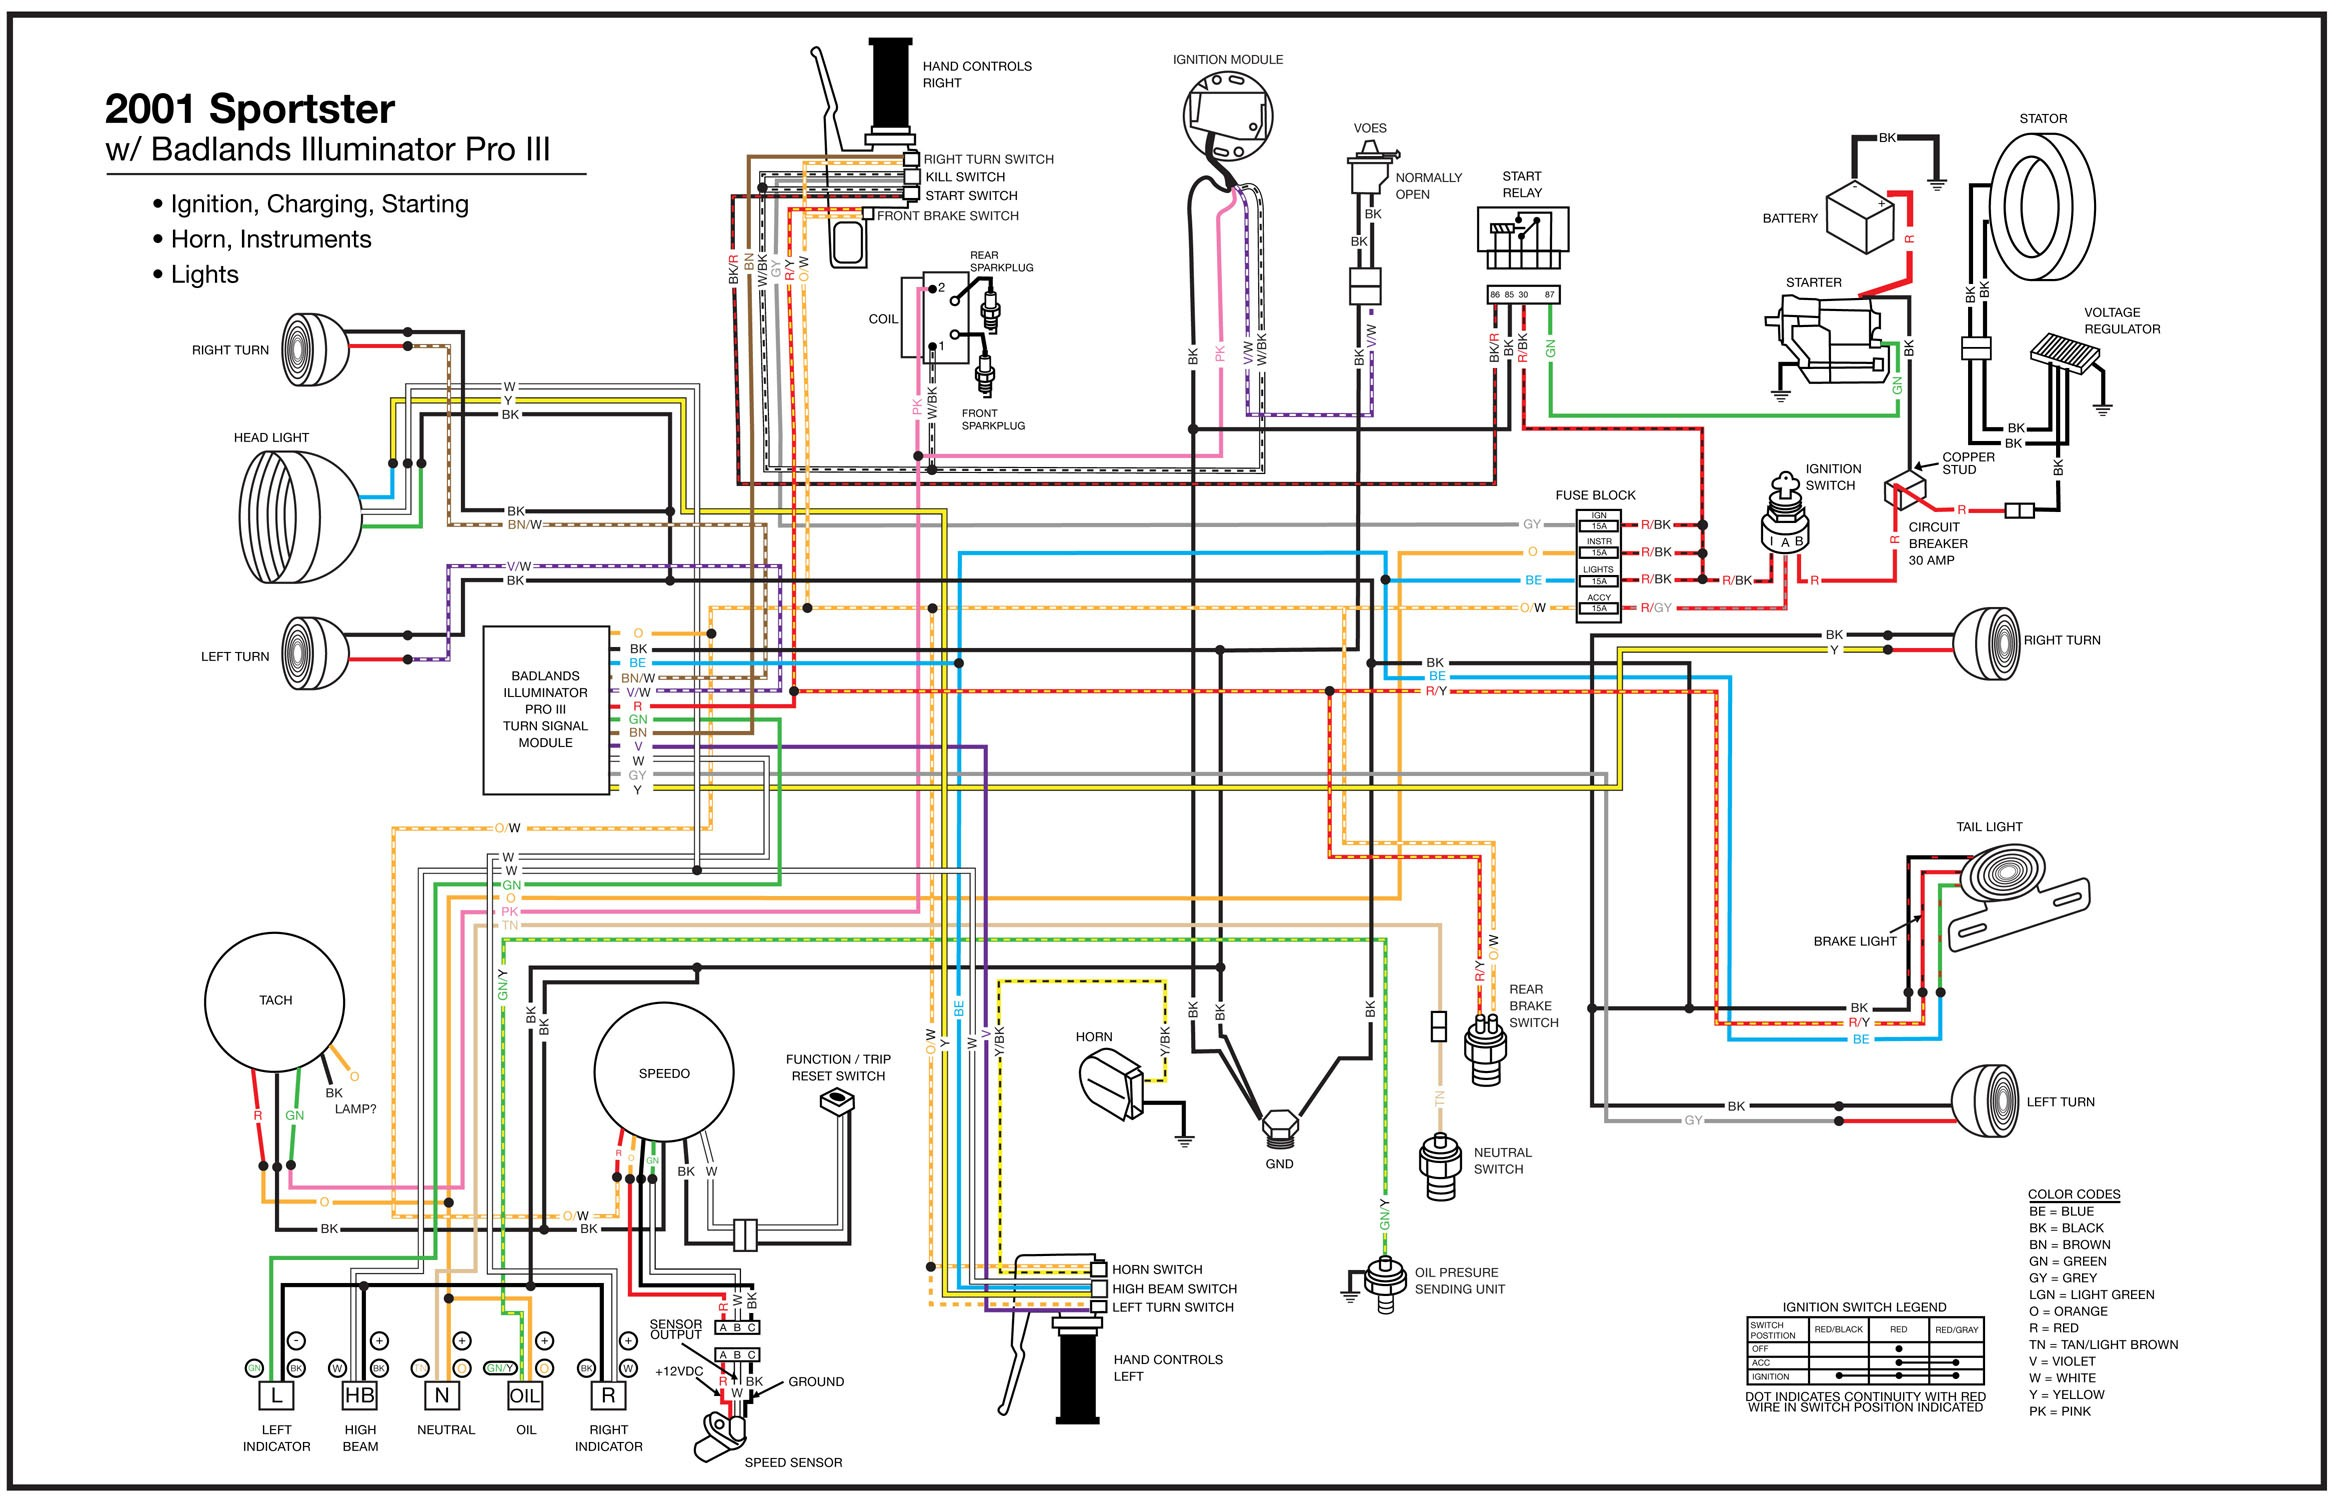 Harley Davidson Wiring Harness Diagram | Wiring Diagram Technic on harley davidson starter, harley davidson screwdriver, harley wiring diagrams pdf, harley wiring diagram for dummies, harley davidson wiring harness diagram, harley softail wiring diagram, harley davidson fuel injectors, harley davidson performance, harley davidson fuel pump, harley davidson bug, harley davidson service manual, harley davidson wiring diagram manual, harley davidson battery, harley davidson knock sensor, harley davidson ignition, harley davidson fuses, harley davidson bridge, harley davidson radio, harley davidson oxygen sensor,